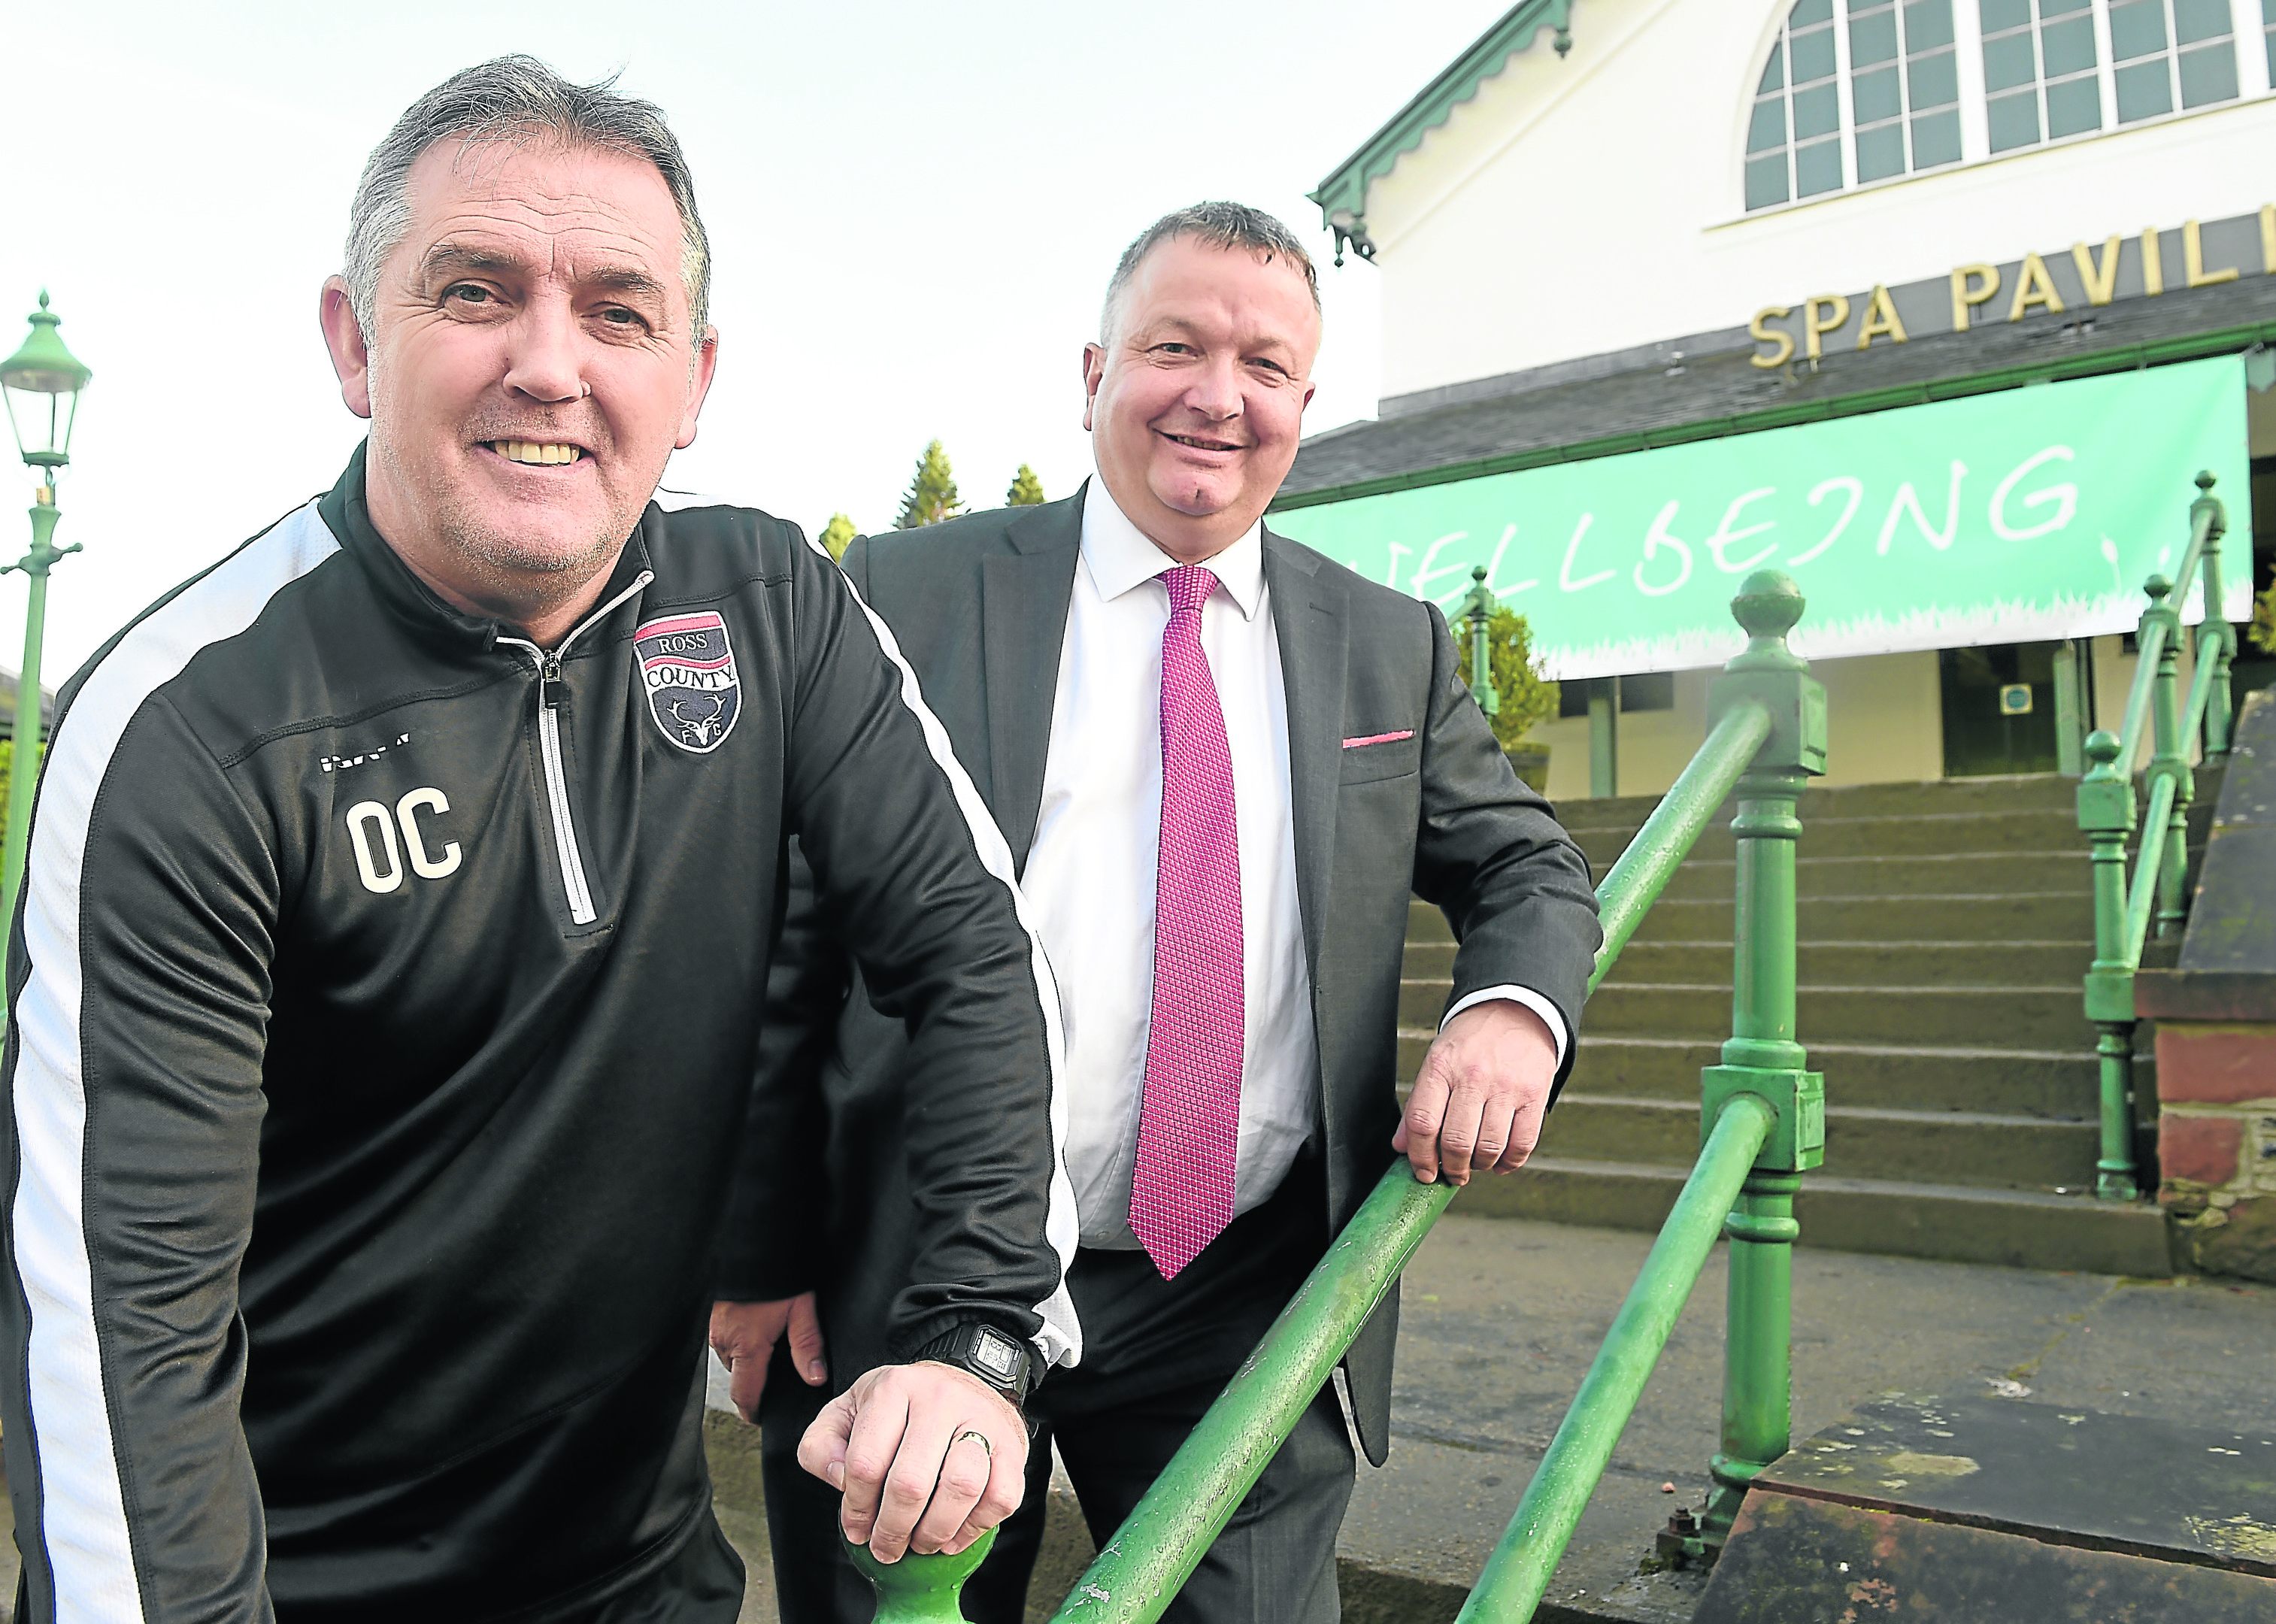 Owen Coyle, Manager of Ross County yesterday spoke at the Rural Wellbeing conference in Strathpeffer. Owen photographed with event Chairman Jim Hume.Pic by Sandy McCook